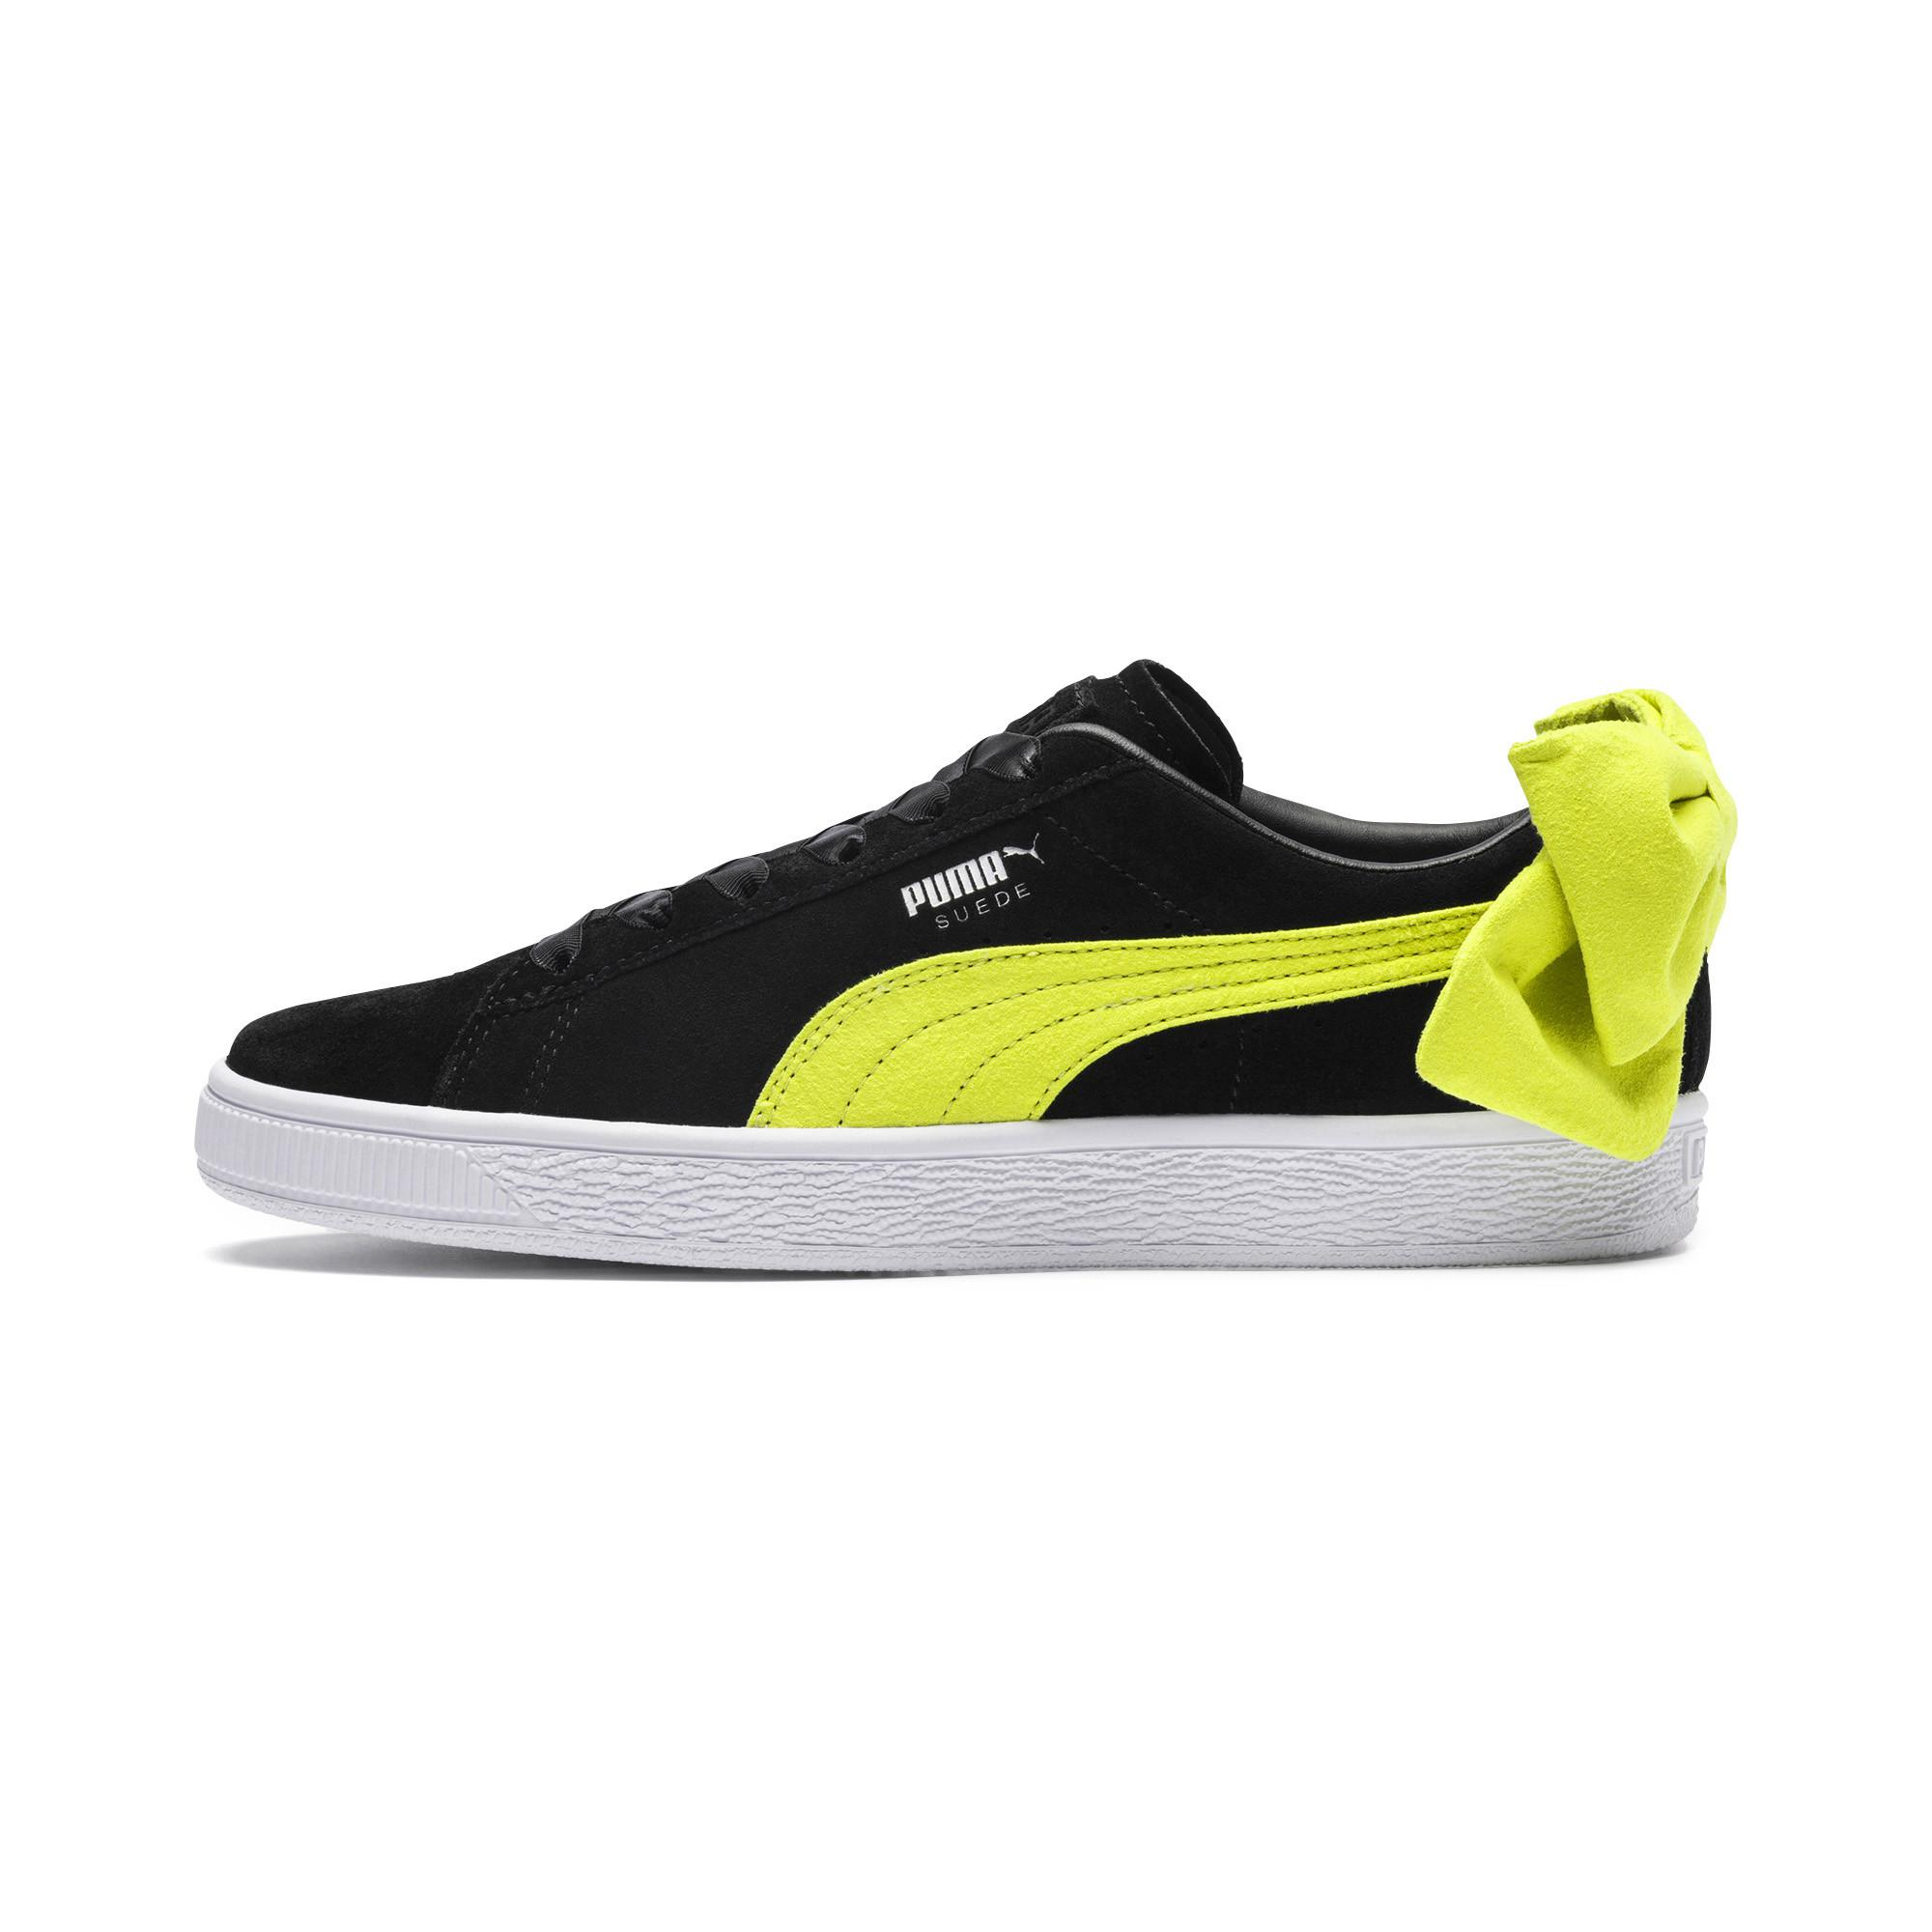 Lyst - PUMA Suede Bow Block Women s Sneakers - Save 51% 9b7dd2bc7d